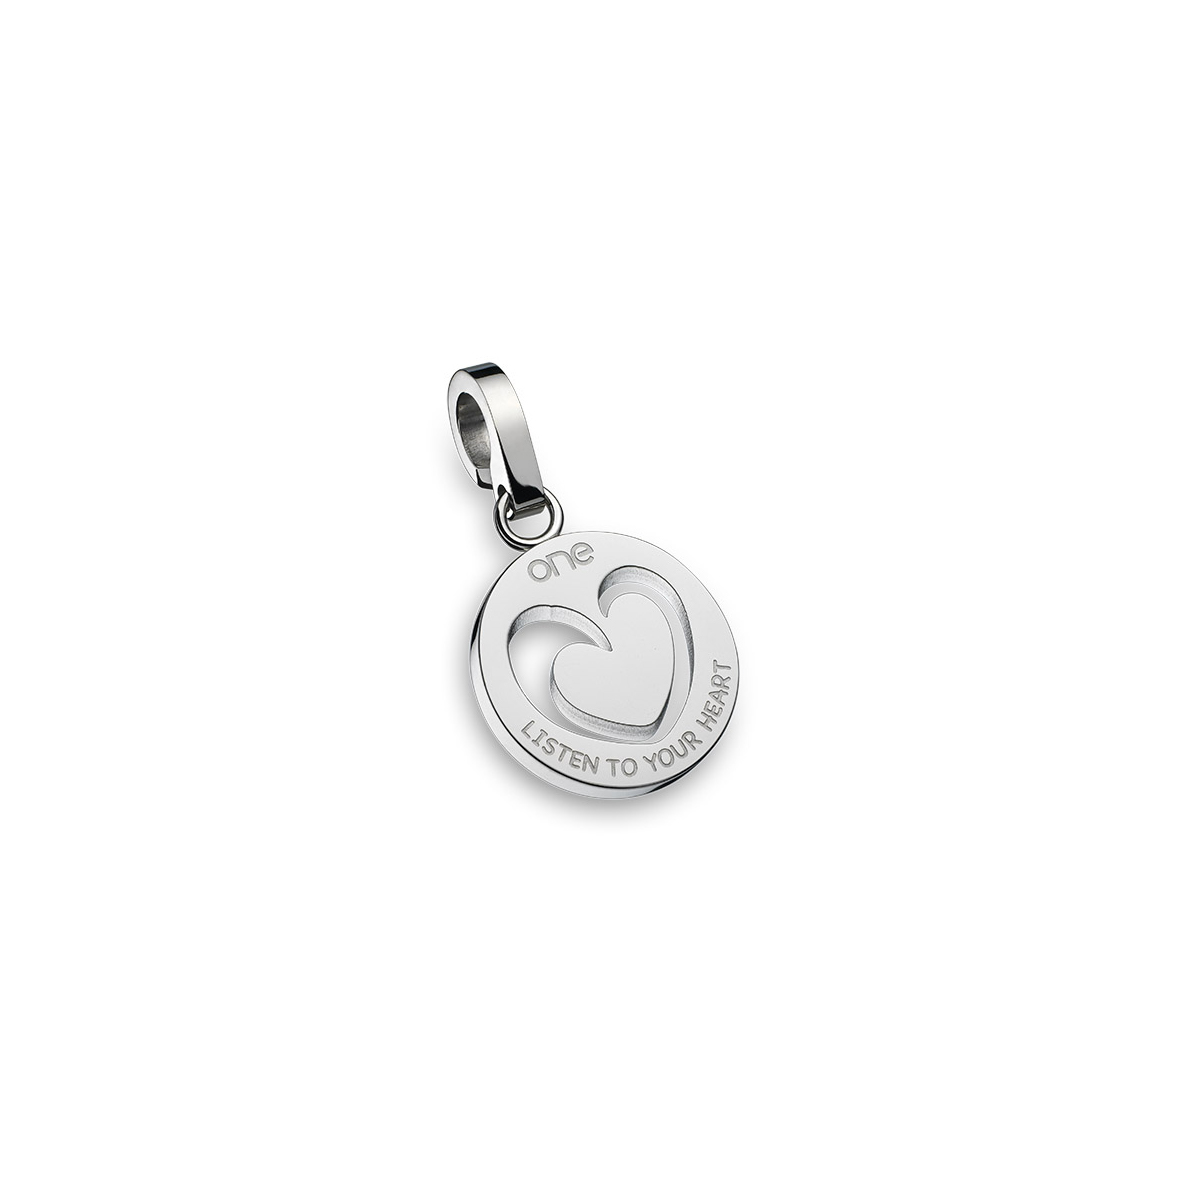 6d6dce4381e Charm ONE JEWELS Listen to Your Heart - OJEBC042